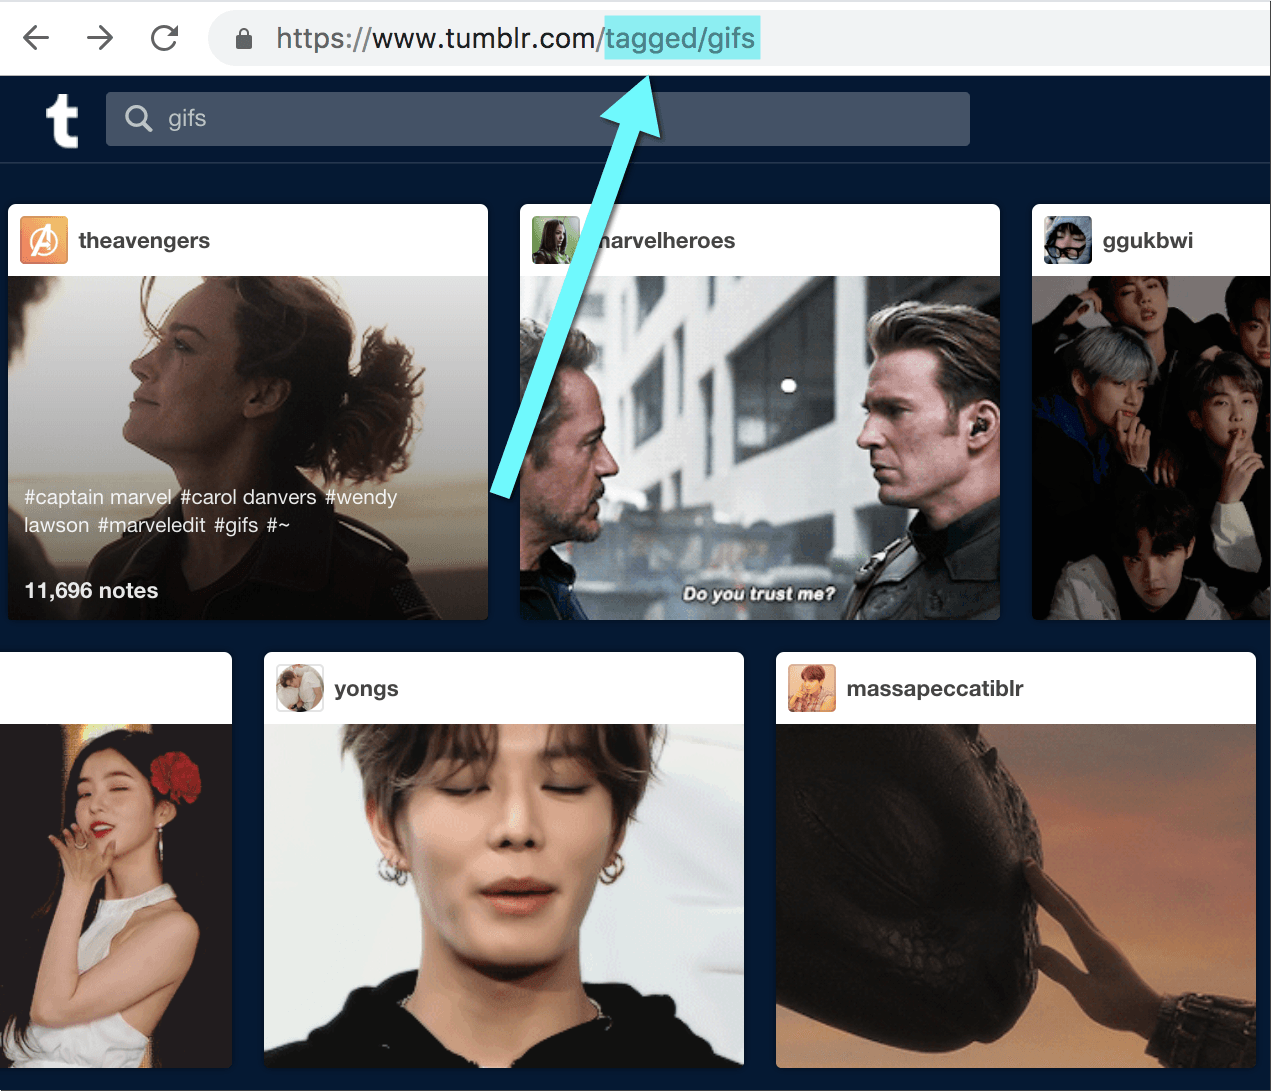 Tumblr tag search